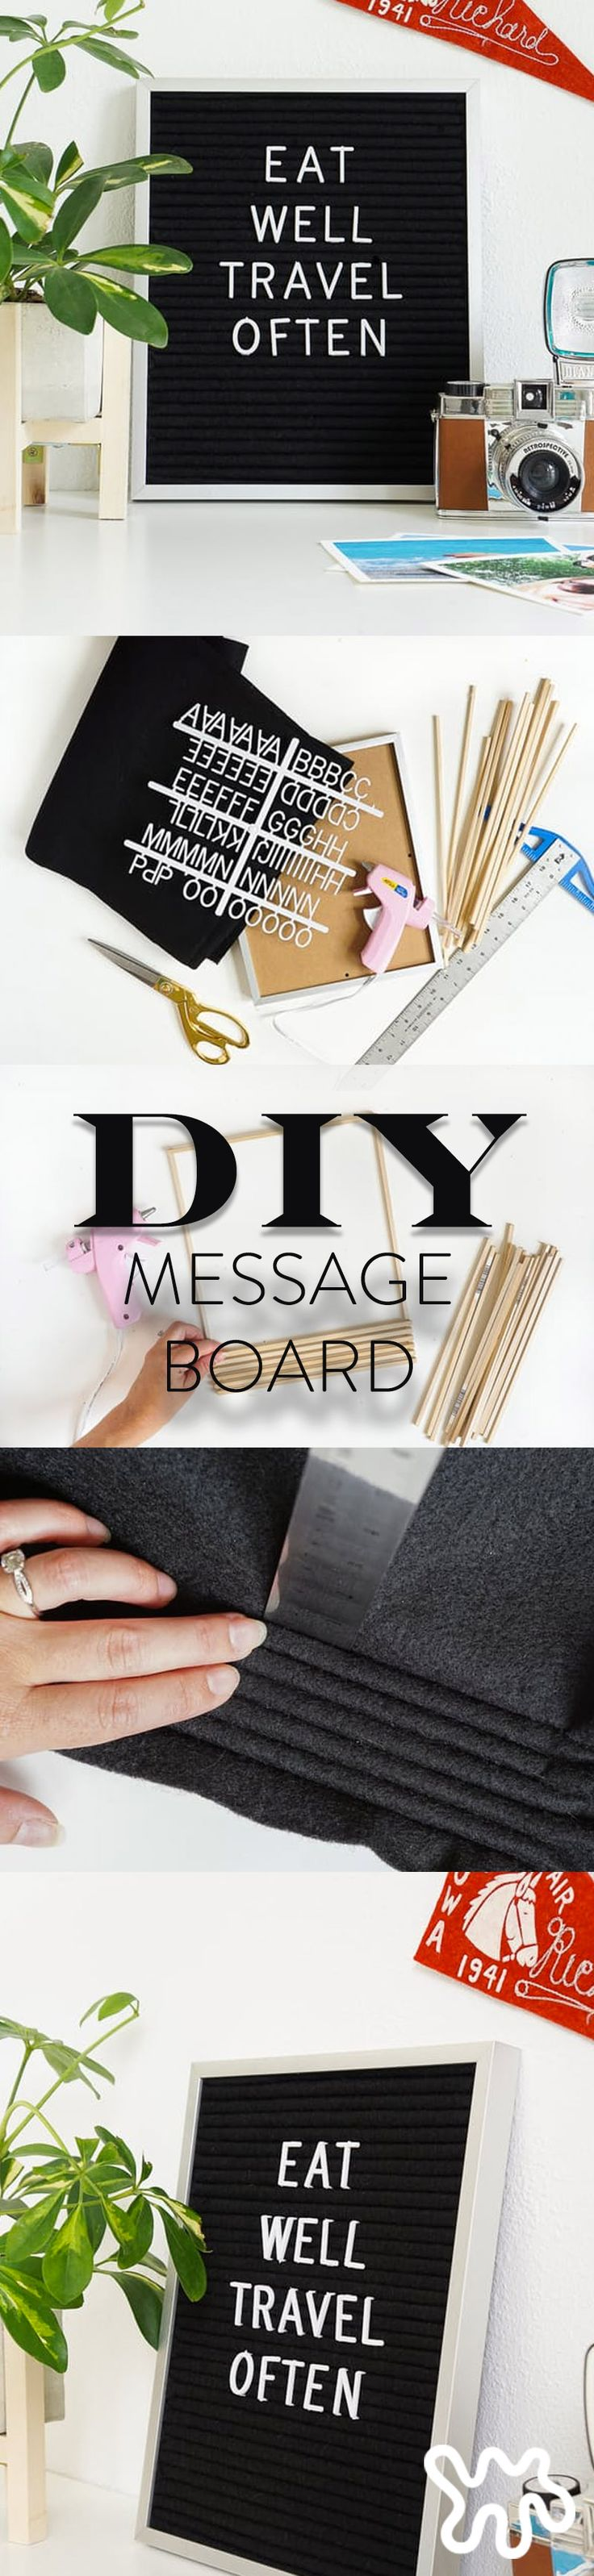 How to Make a Vintage-Style Felt Message Board For Under $25. This easy DIY brings back vintage message boards in a big way with BIG style. You'll likely find them styled as interior accessories or on your favorite blogger's Instagram feed, always sporting a clever message, of course. If you want to get in on the trend, then why not make yourself one?